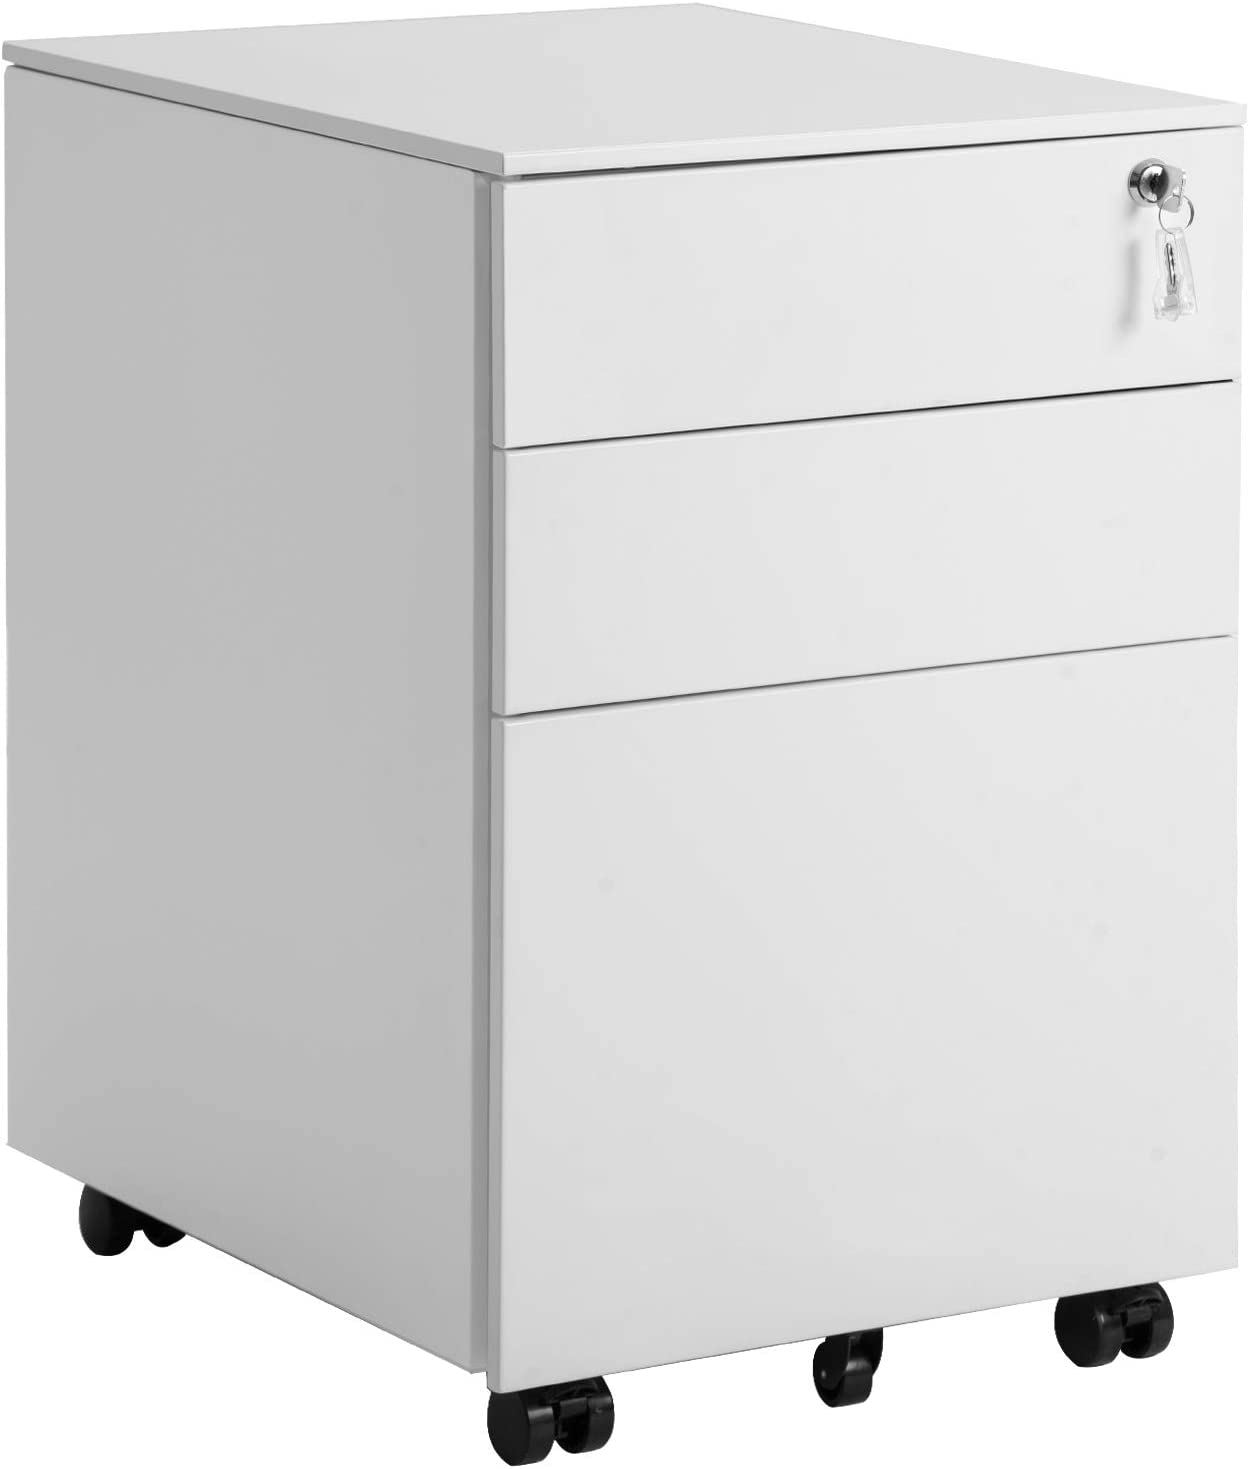 30 Drawer File Cabinet Locking File Cabinet Metal Office Cabinet with Lock  Fully Assembled Except Wheels (White)